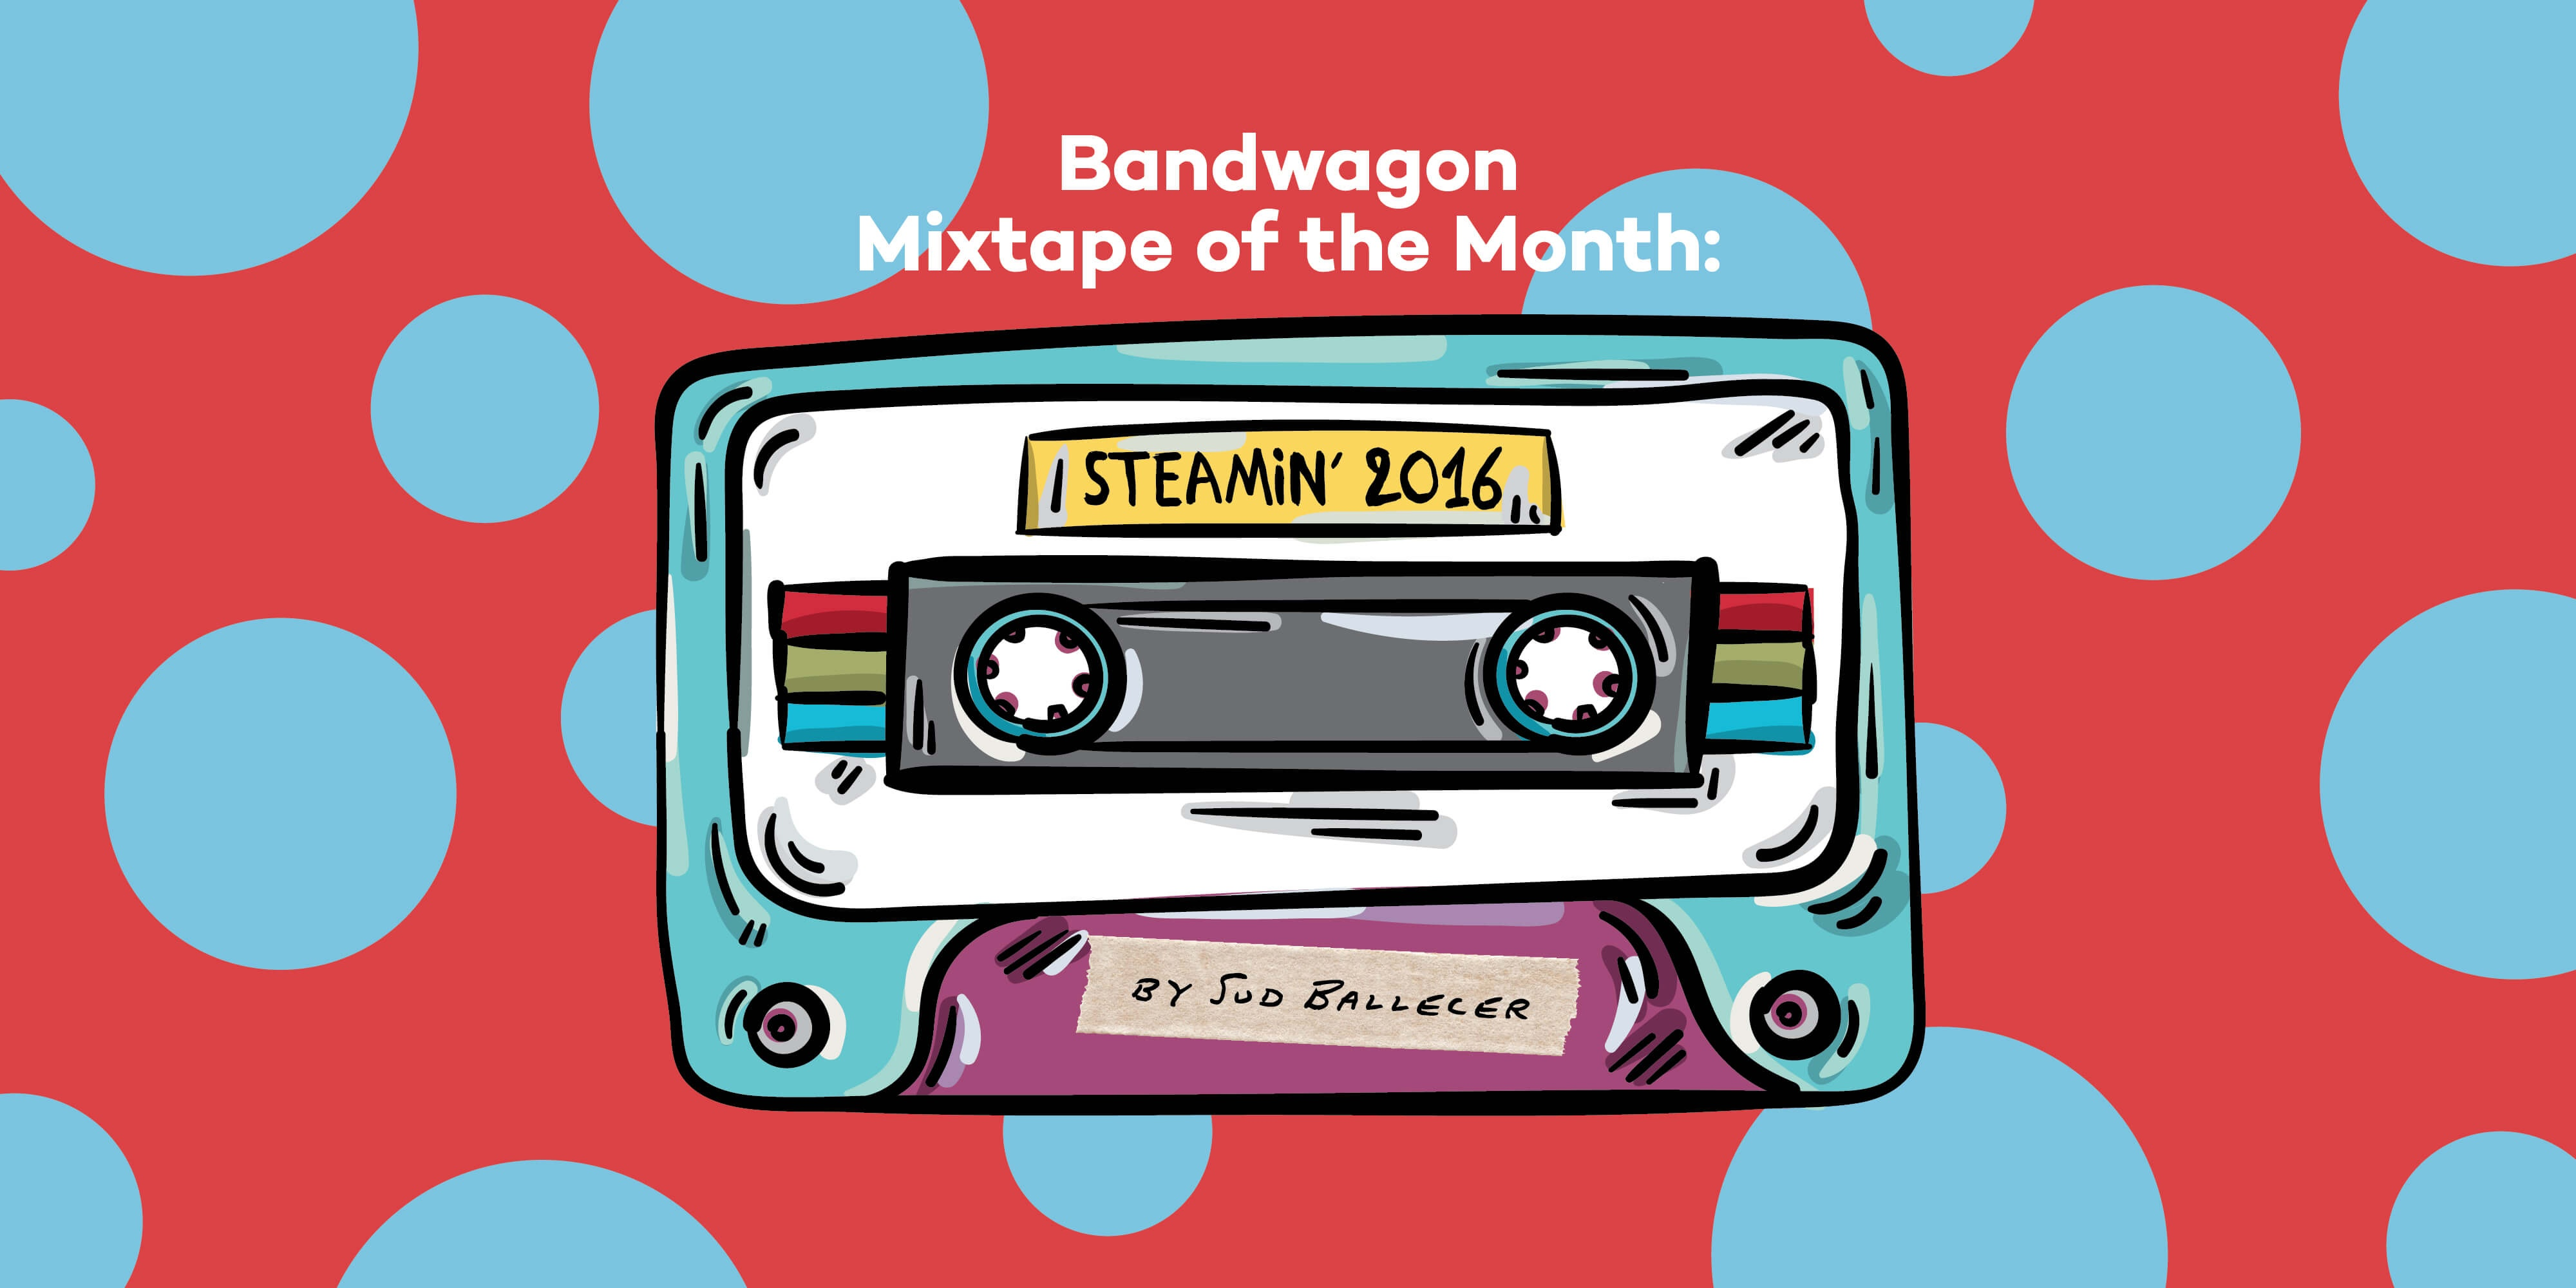 Bandwagon Mixtape of the Month #1: Sud Ballecer's Steamin' 2016